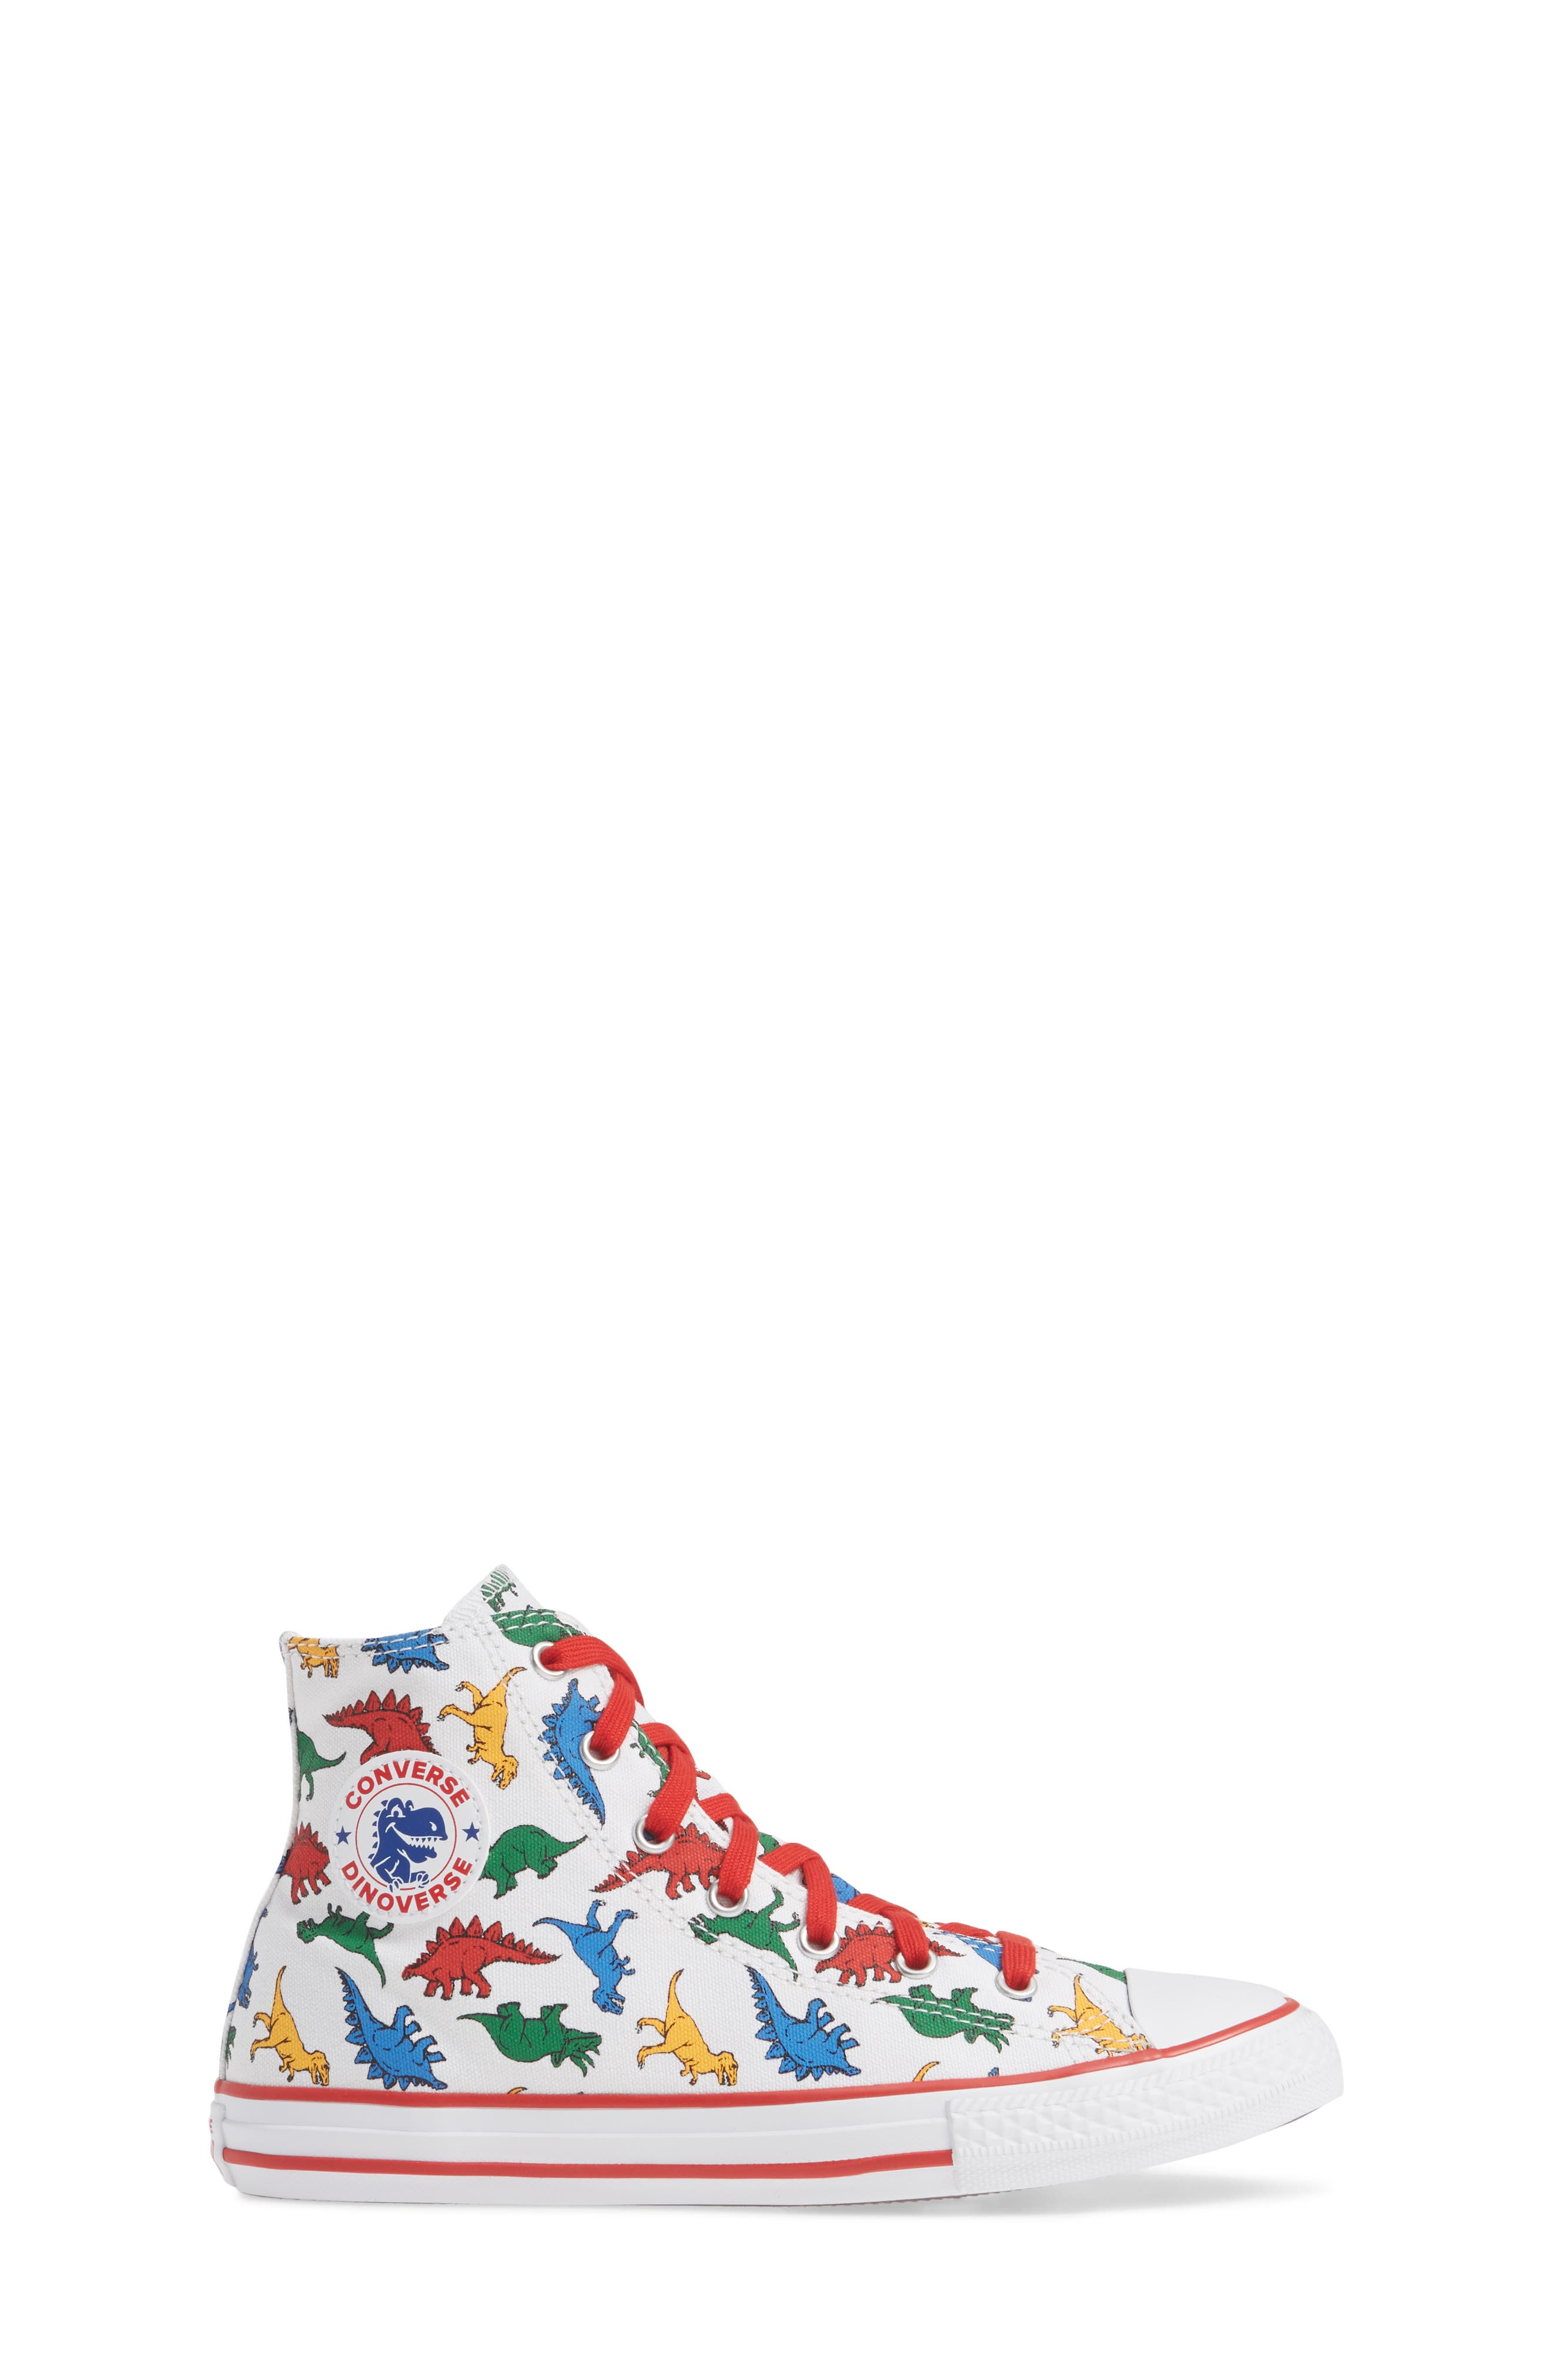 CONVERSE,                             Chuck Taylor<sup>®</sup> All Star<sup>®</sup> Dino High Top Sneaker,                             Alternate thumbnail 3, color,                             WHITE/ ENAMEL RED/ BLUE DINO